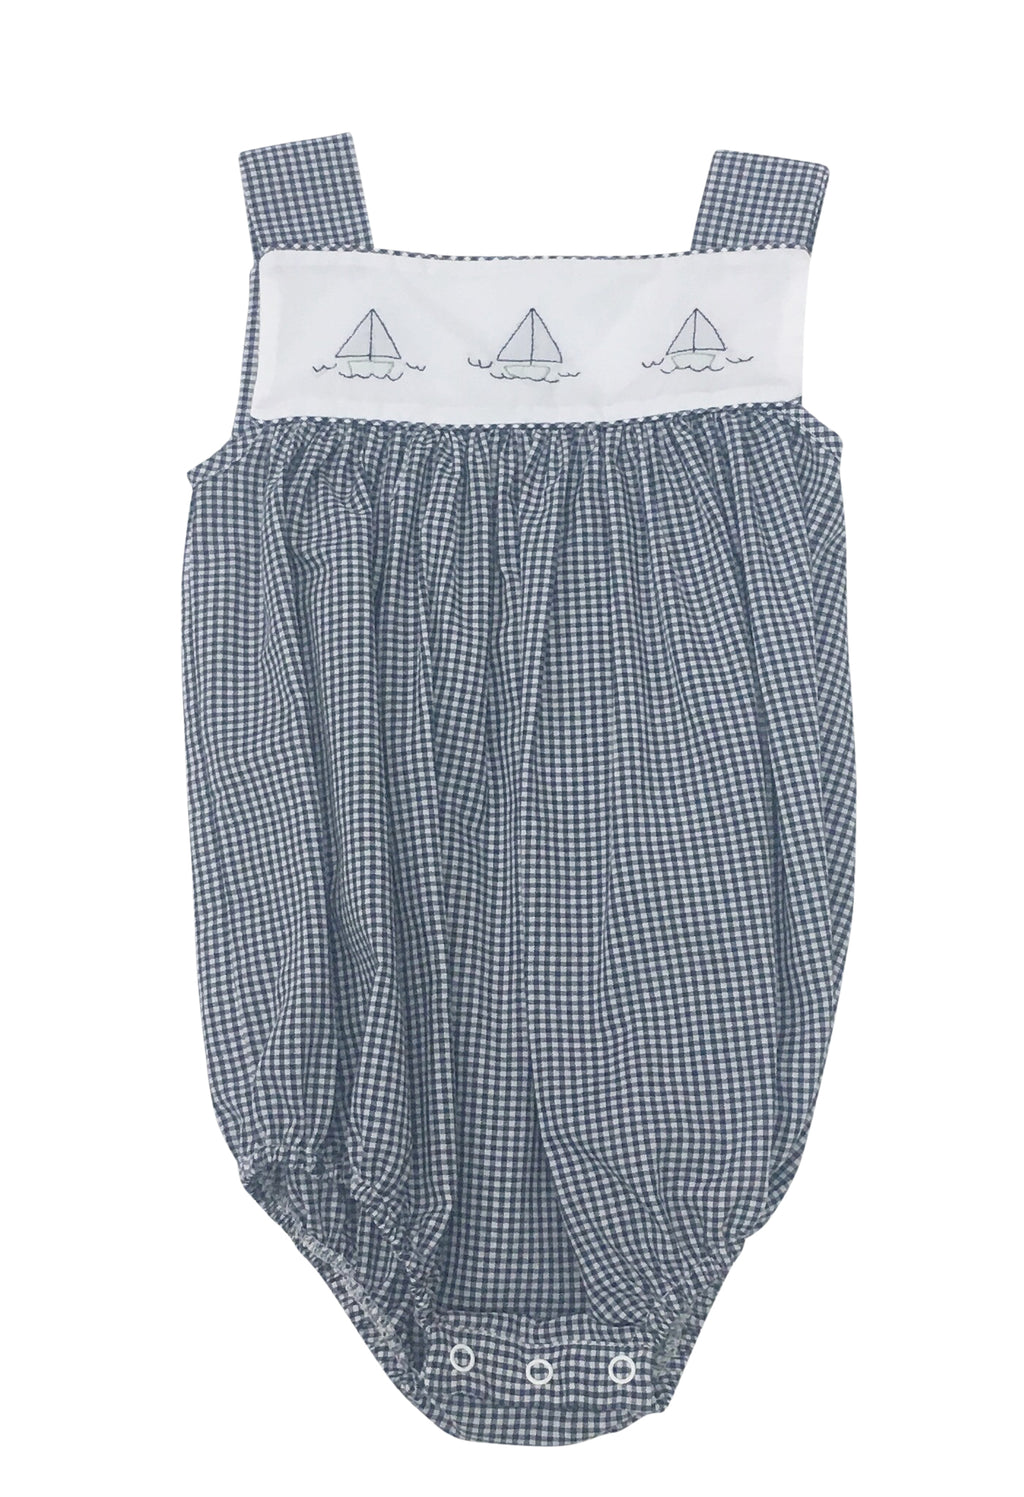 Auraluz Navy Gingham Sunbubble with Navy Boats - Born Childrens Boutique